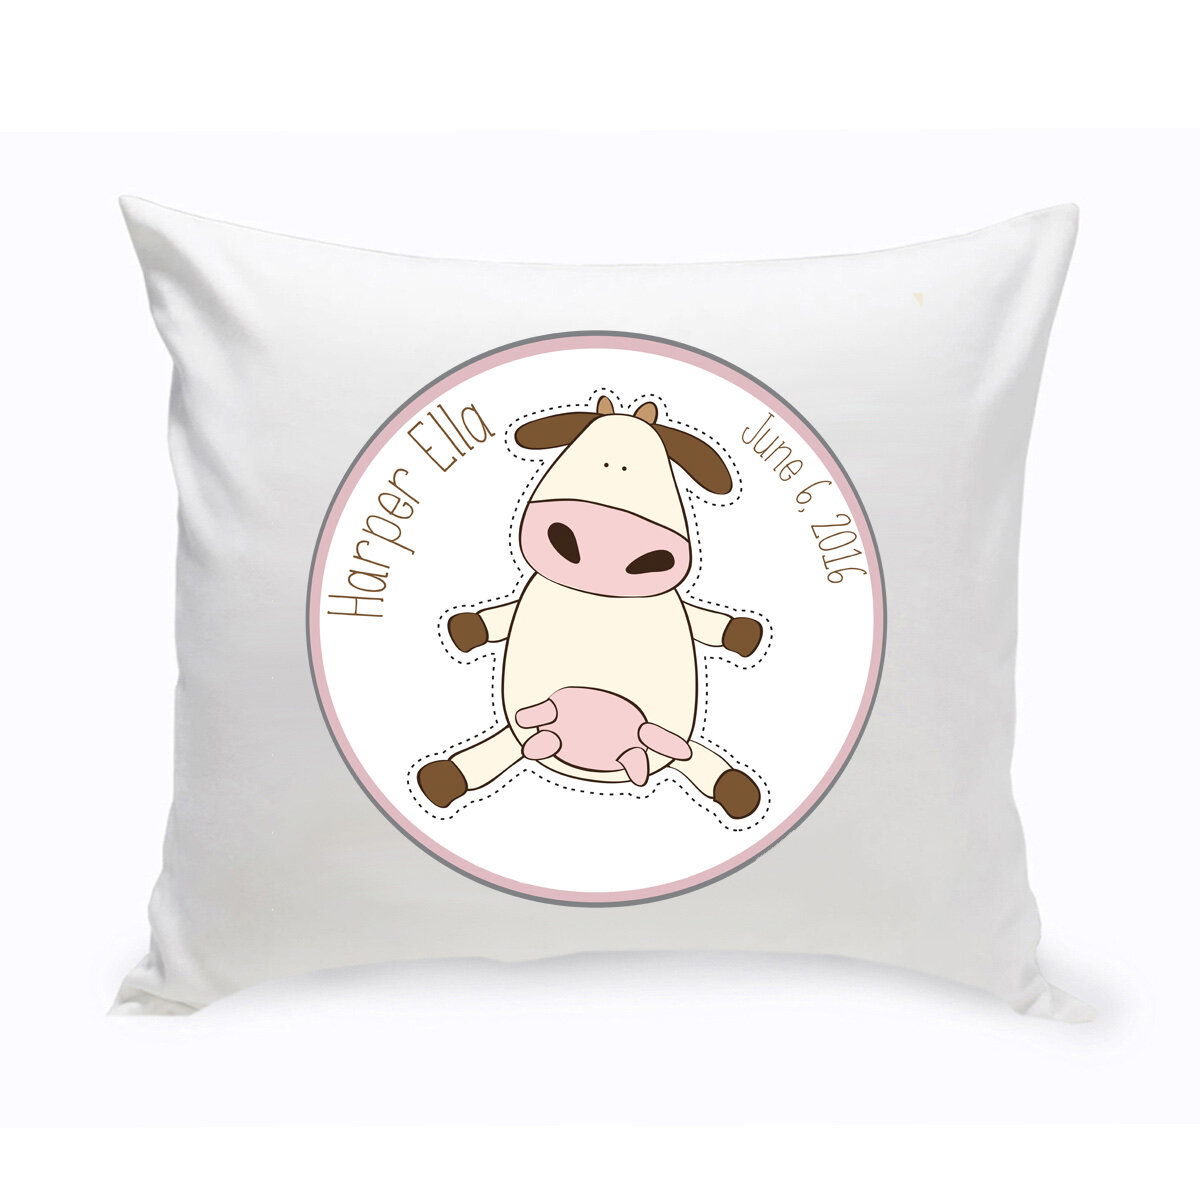 Jds Personalized Gifts Baby Nursery Cow Cotton Throw Pillow Wayfair